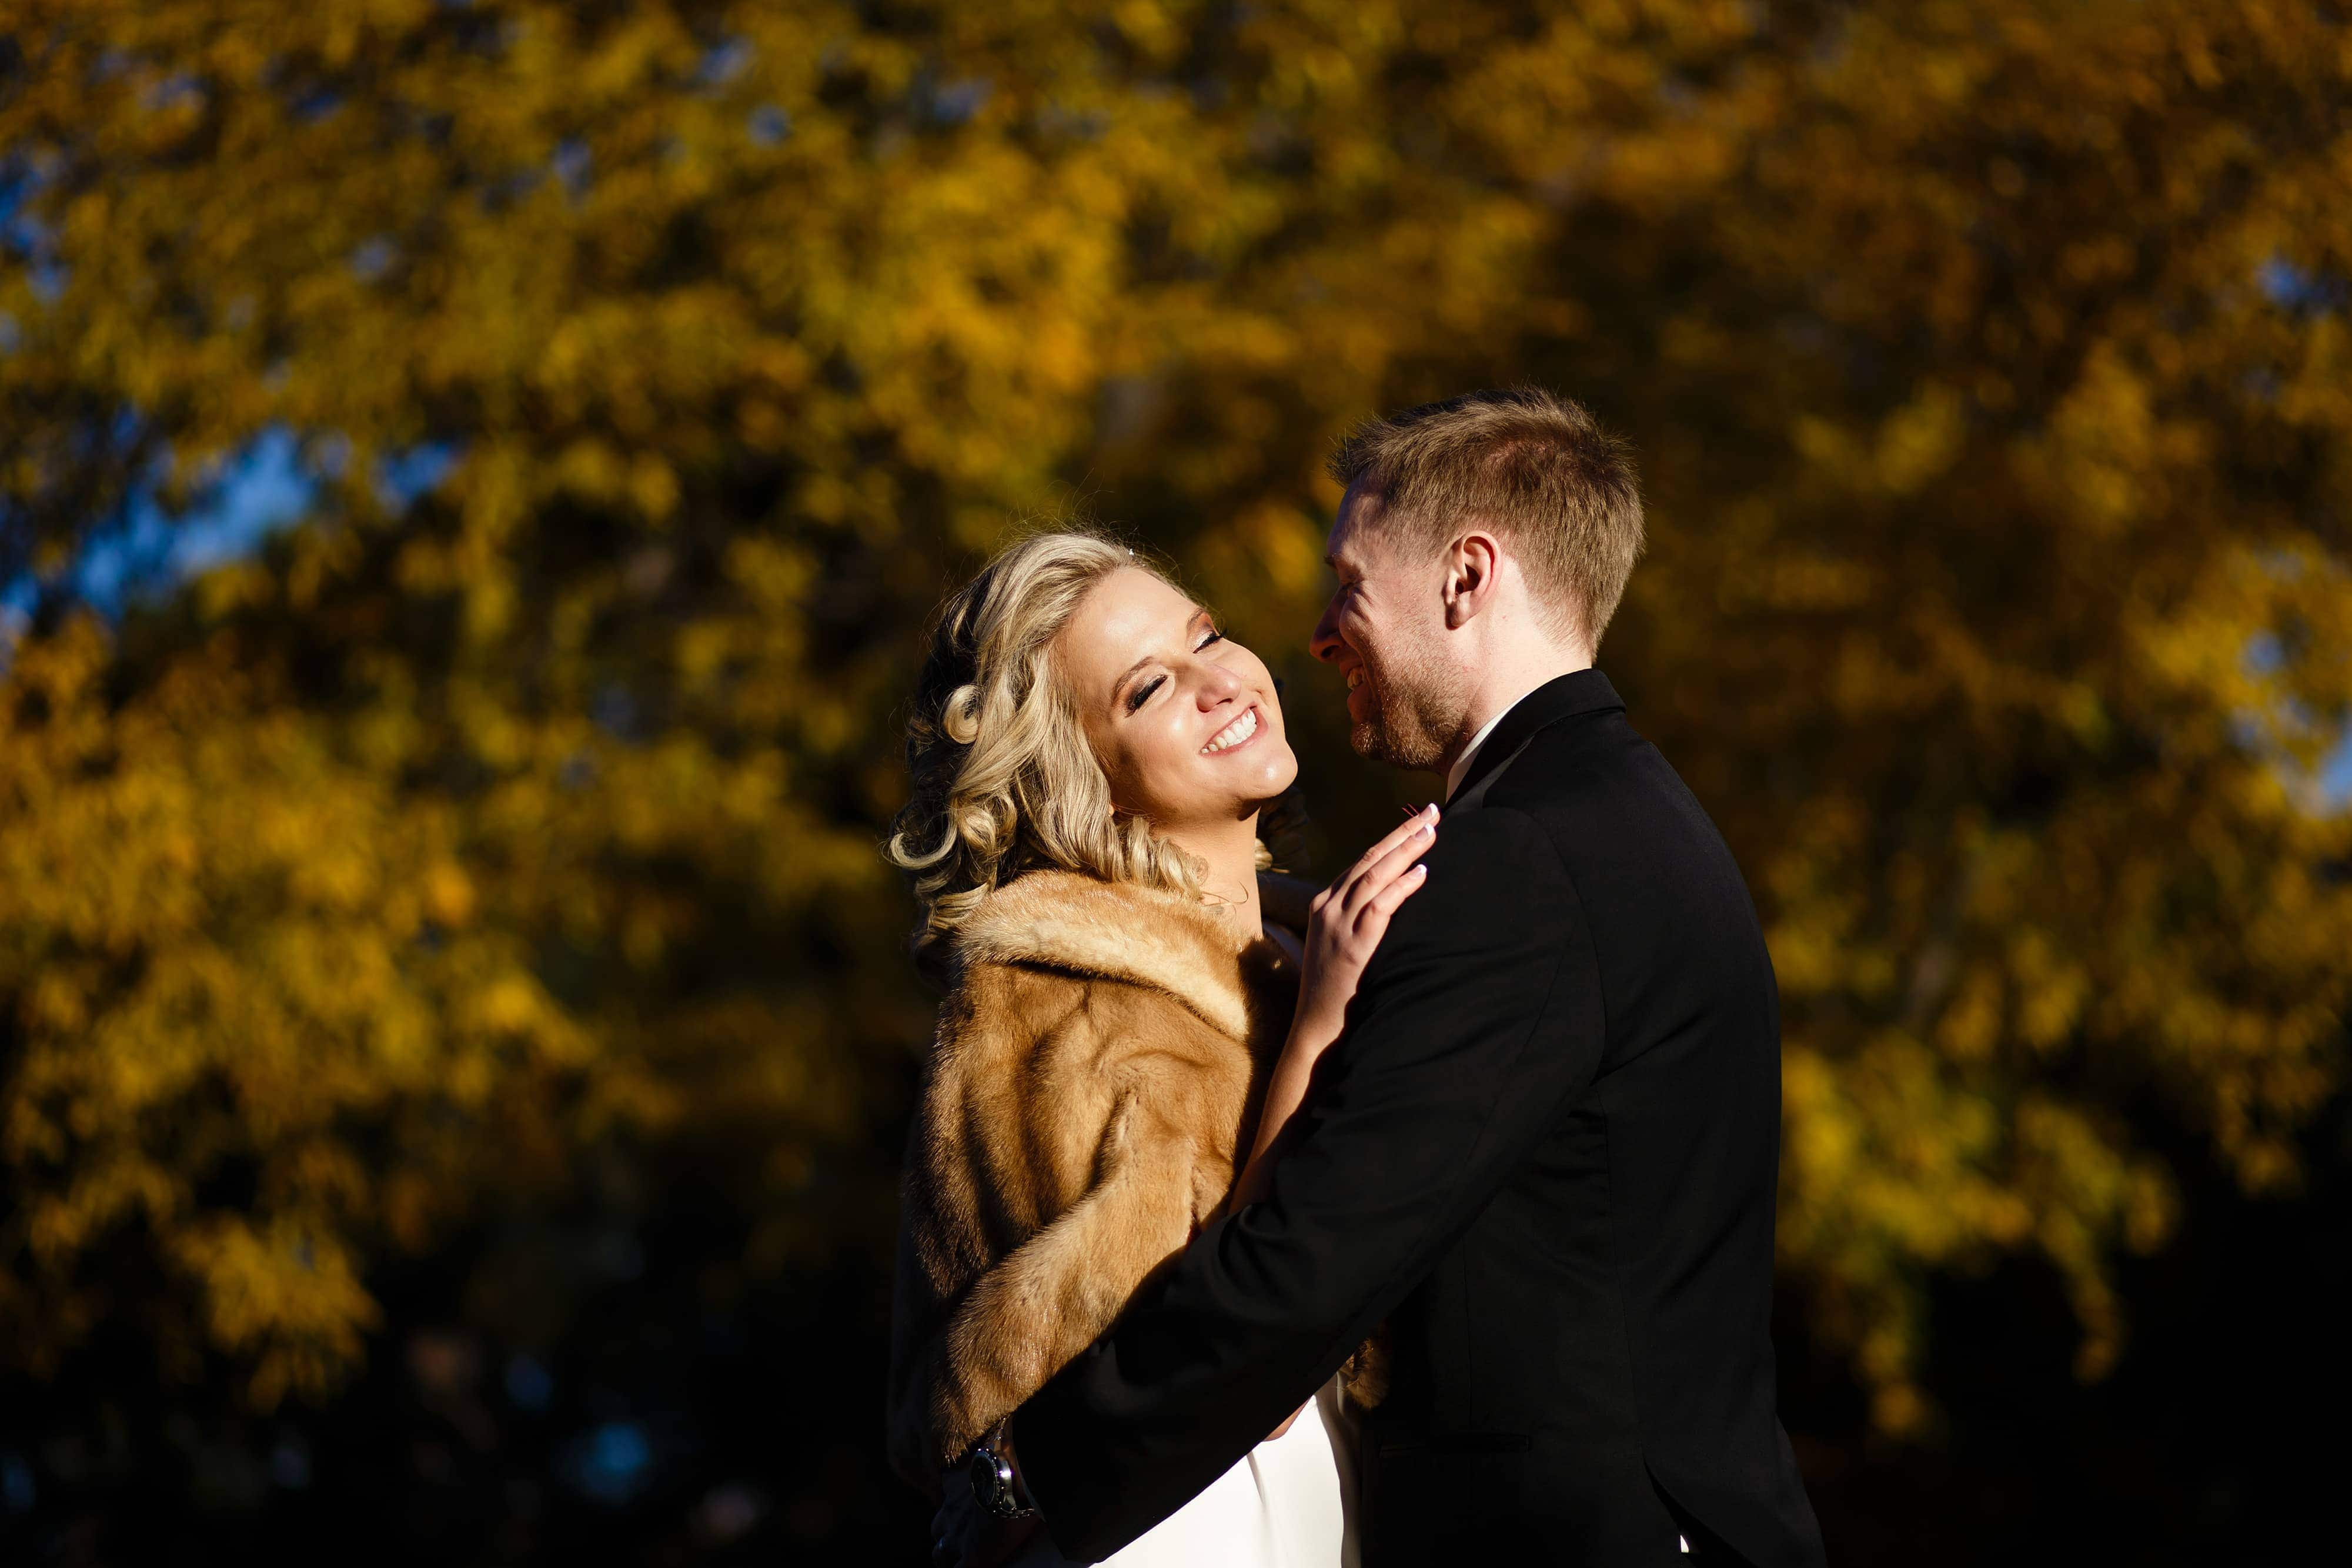 Sarah and Ryan share a moment together in front of a golden colored tree at Cheesman Park